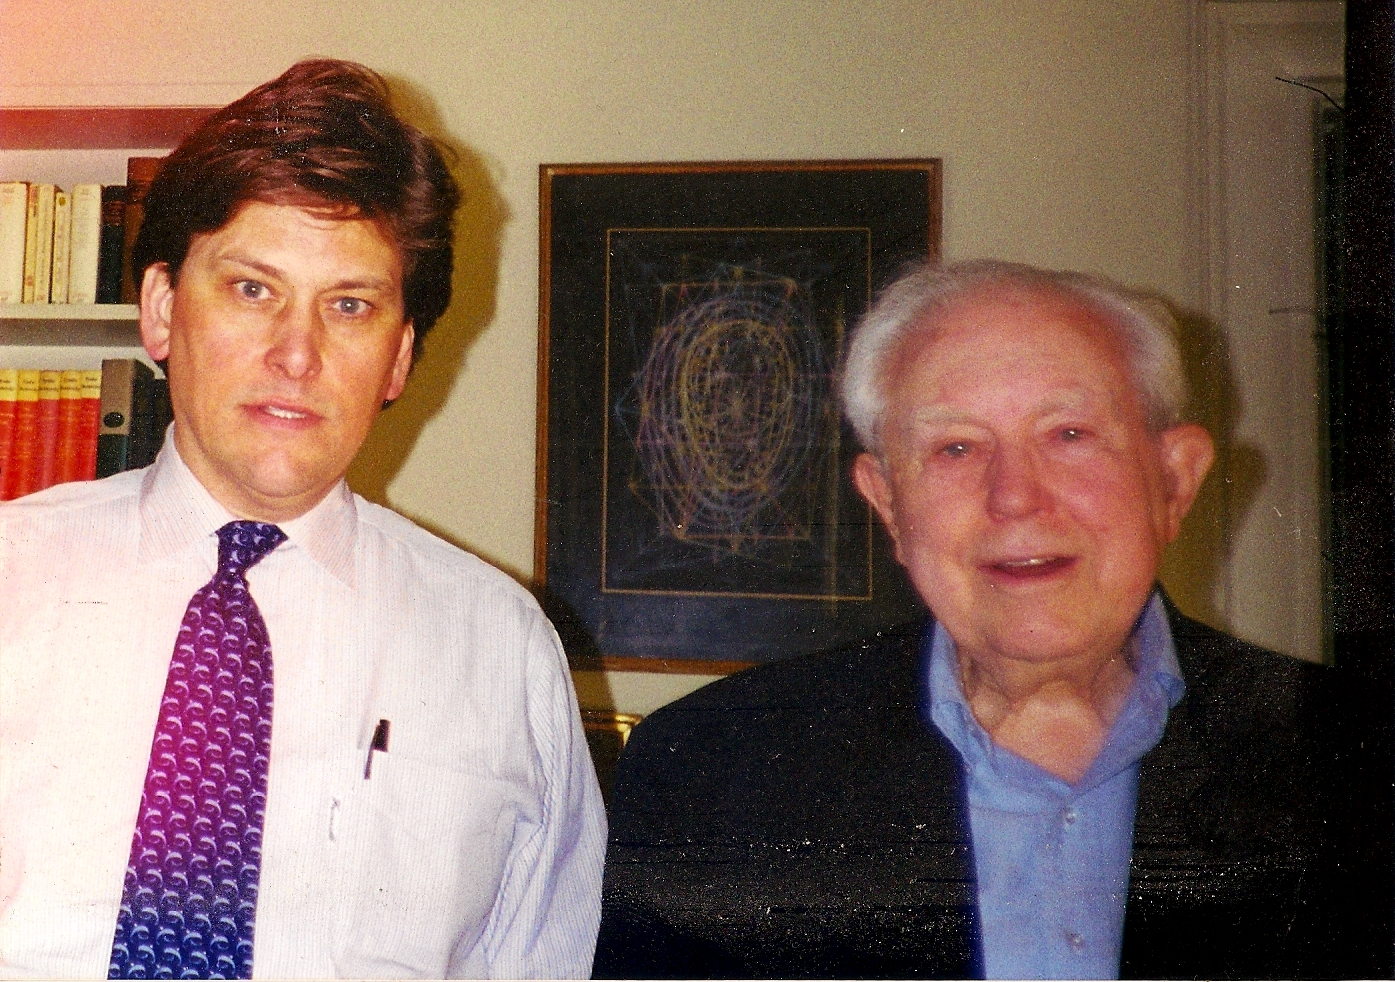 Elliott Carter and Christopher Fulkerson